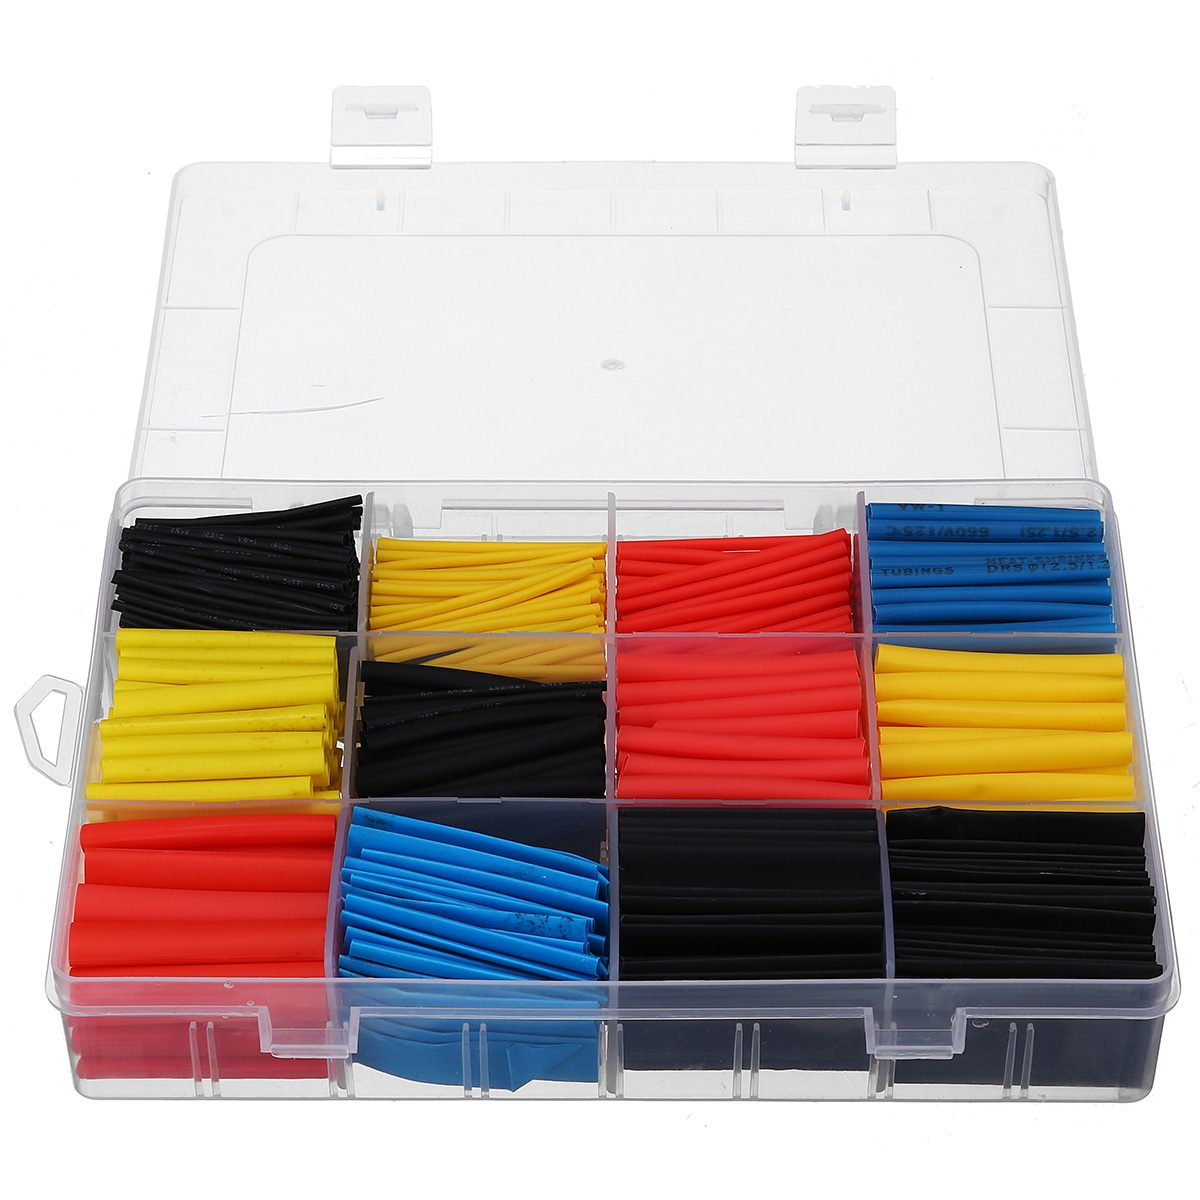 DealCable Assortment-Wrap Sleeving-Tubing-Set Electrical-Insulation Pe-Heat Insulated 780pcs╔